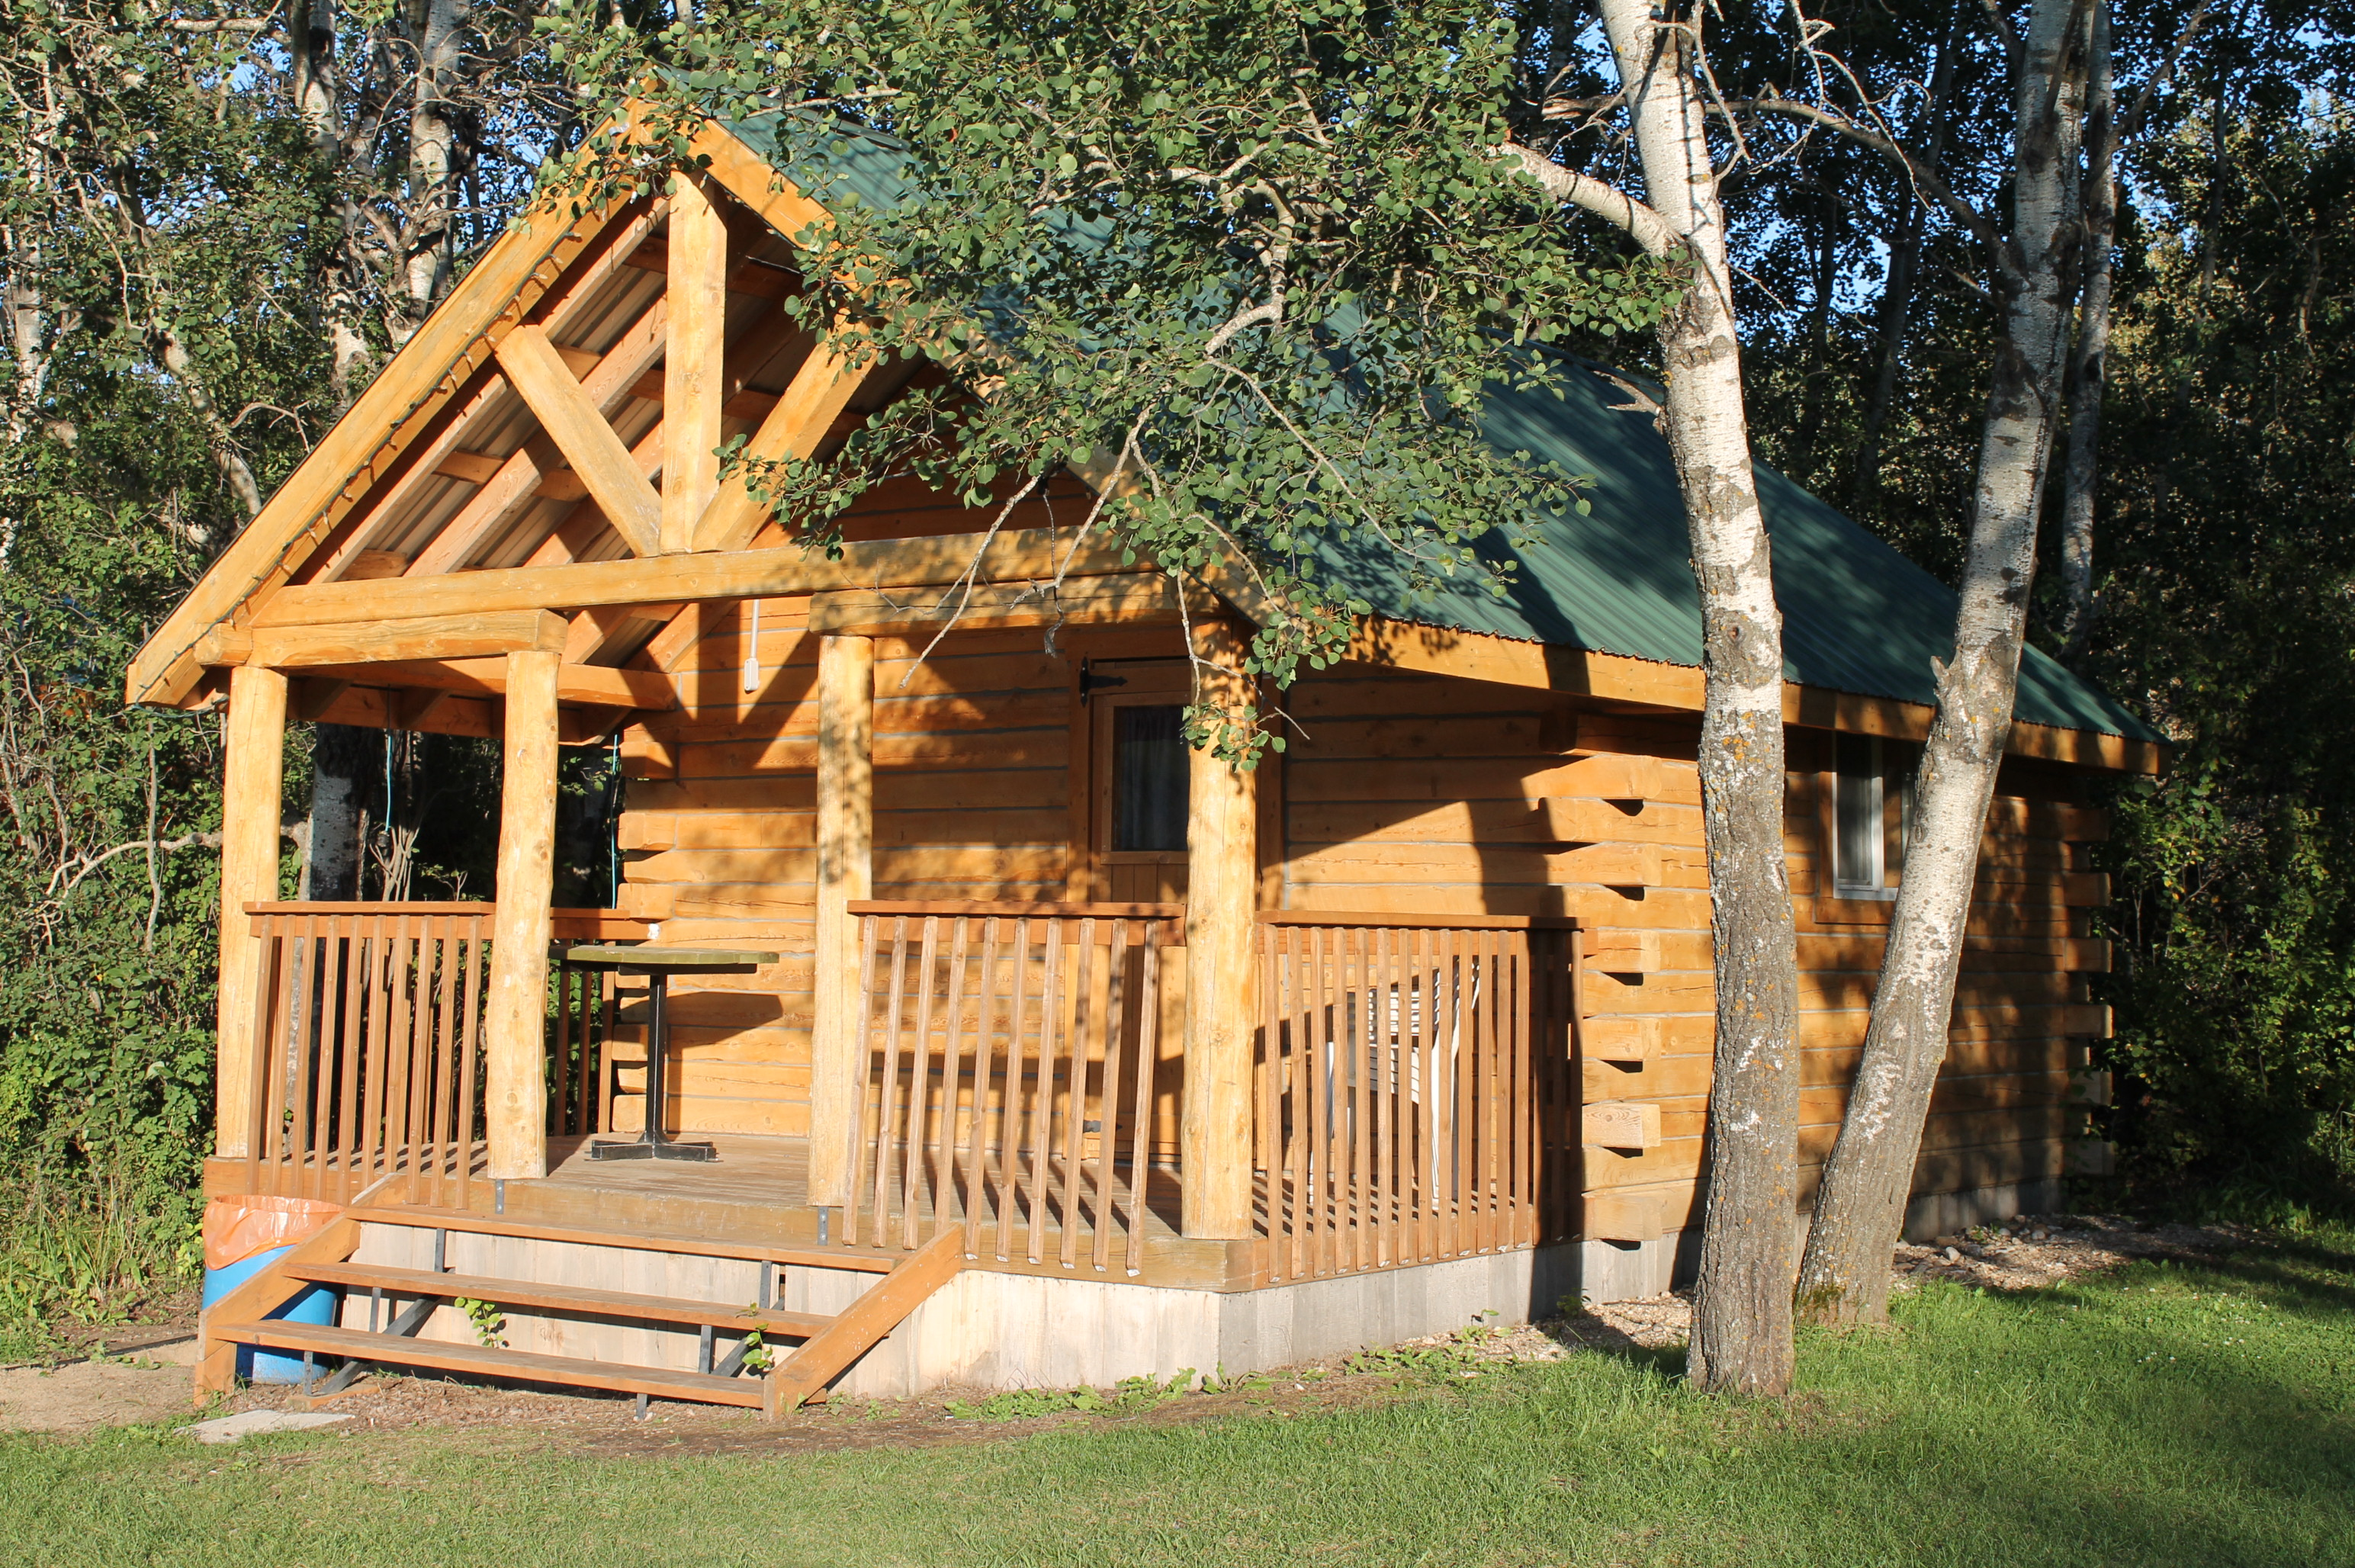 Large Log Cabin ~ Large cabin asessippi beach campground